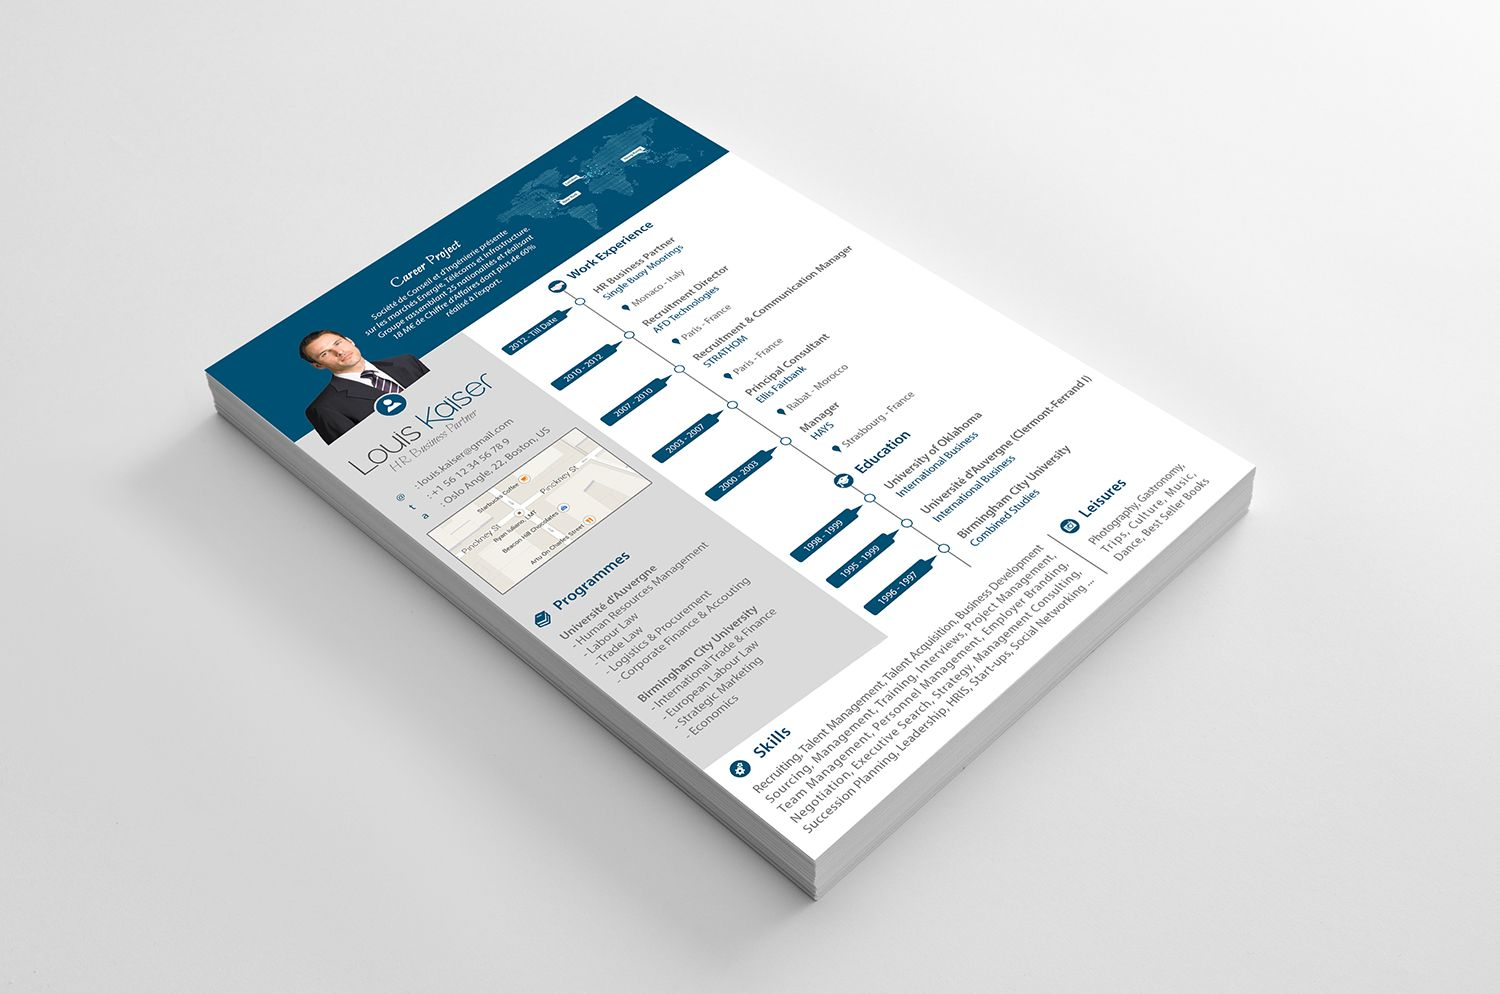 Hr business partner resume available in 5 great colors